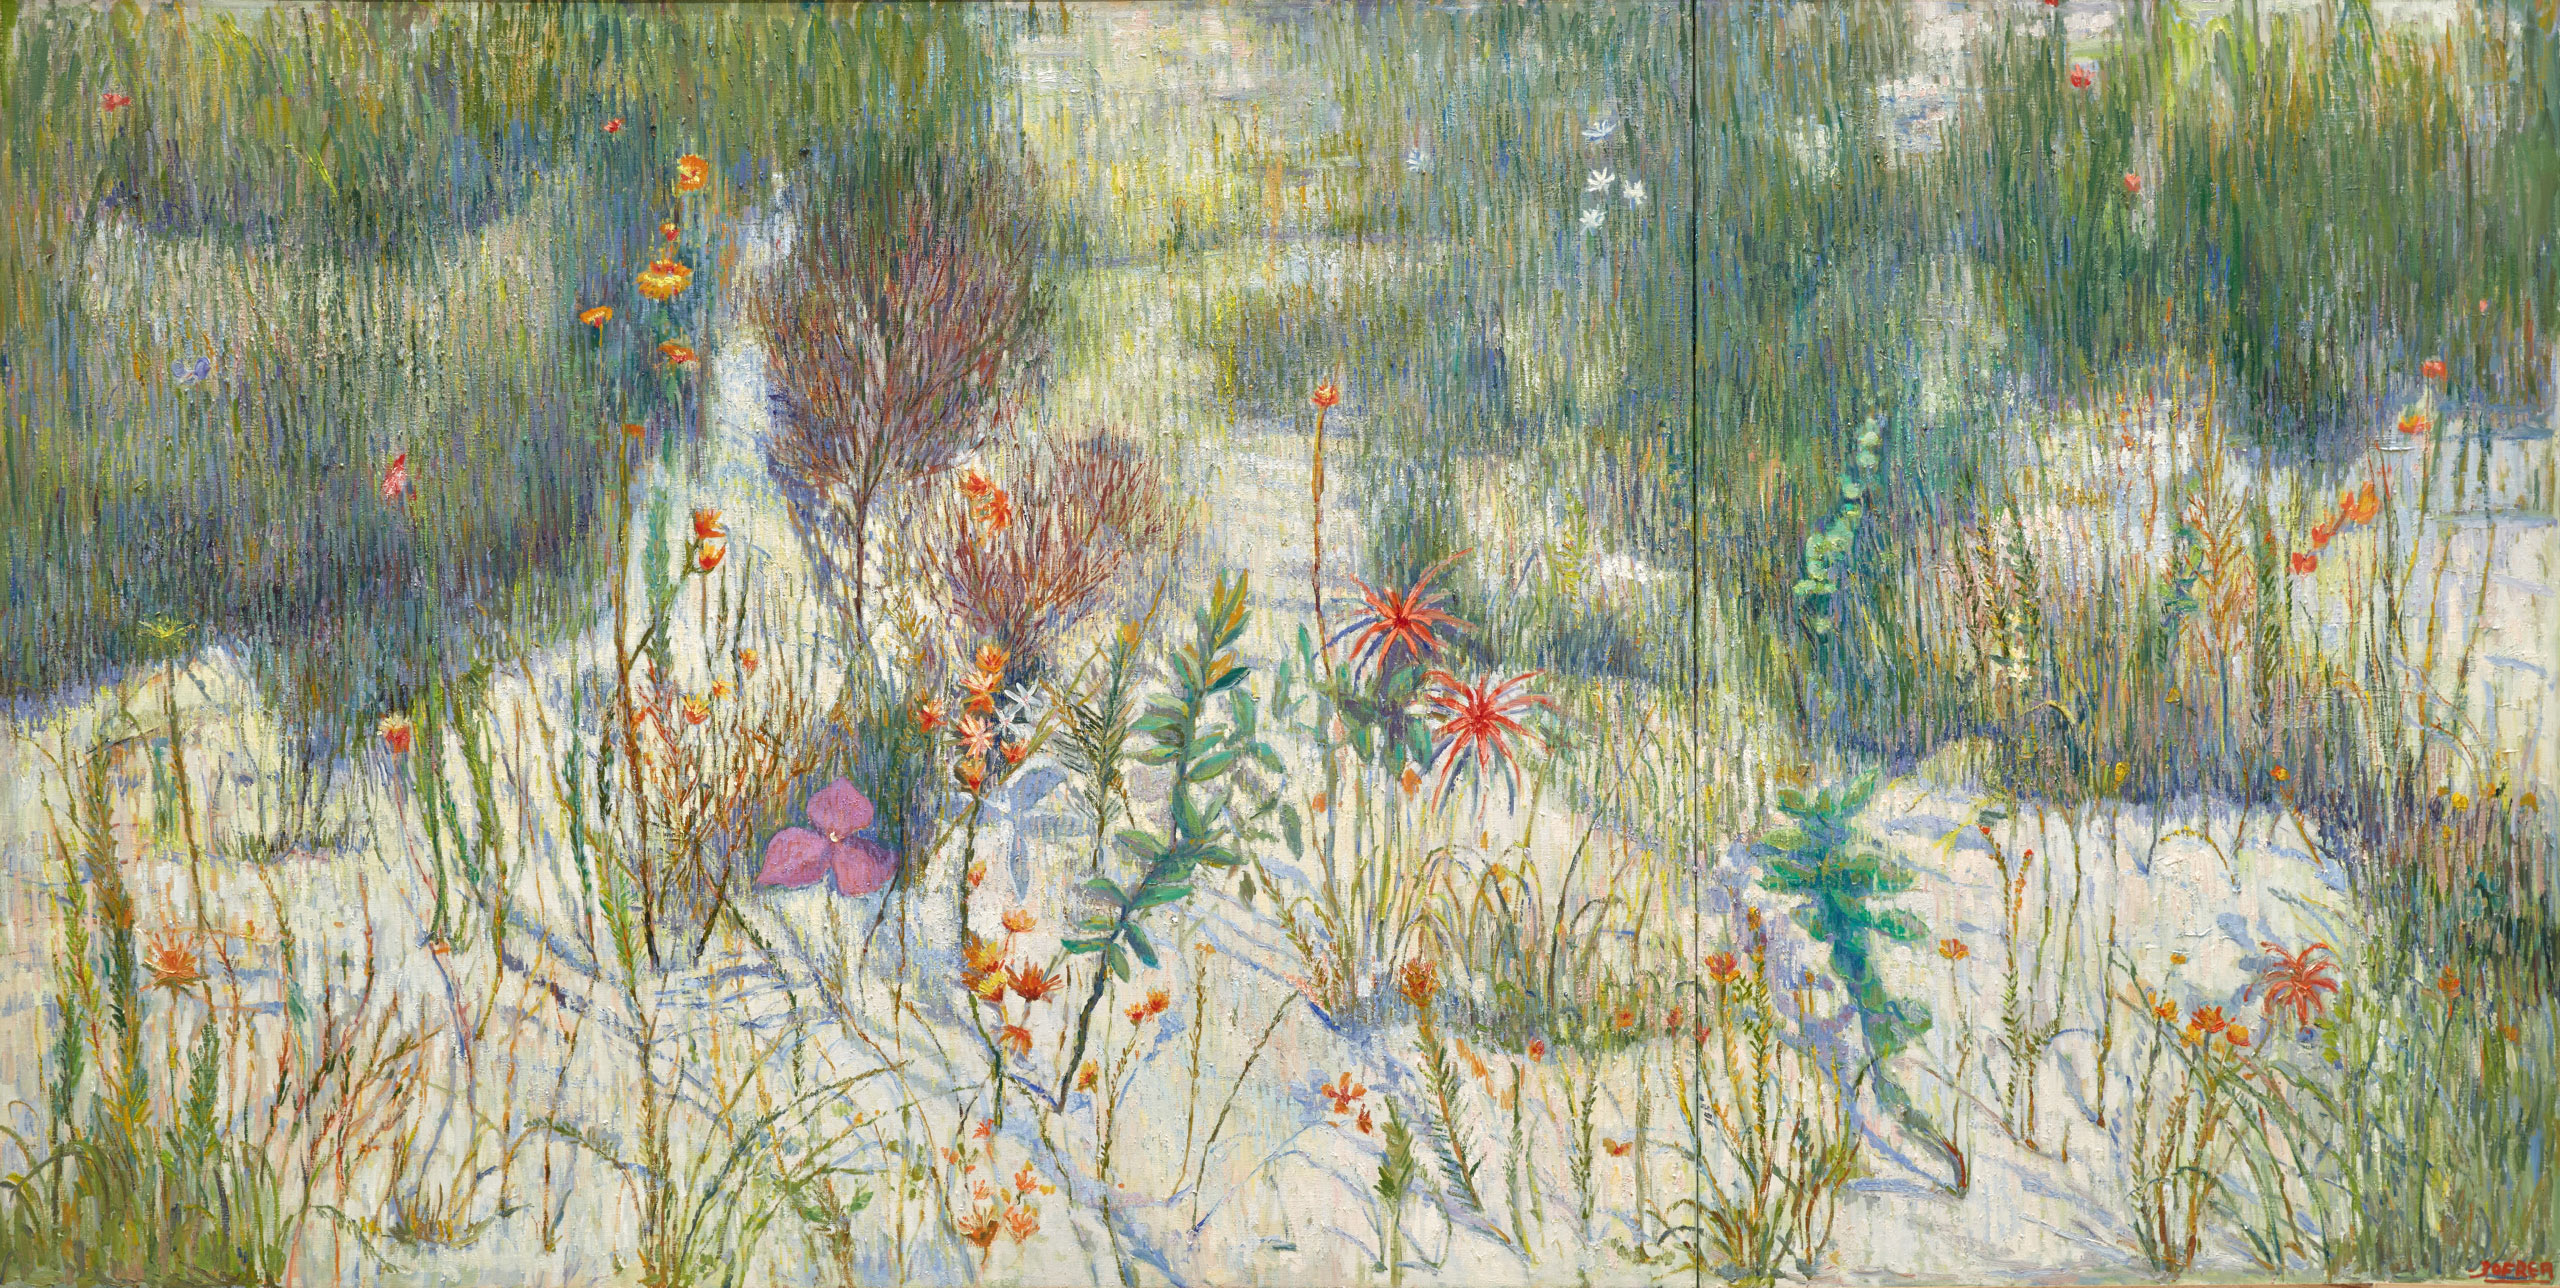 Salvatore Zofrea     Days of spring - irises & grevillea     oil and lapis lazuli on linen     153 x 300 cm     © the artist